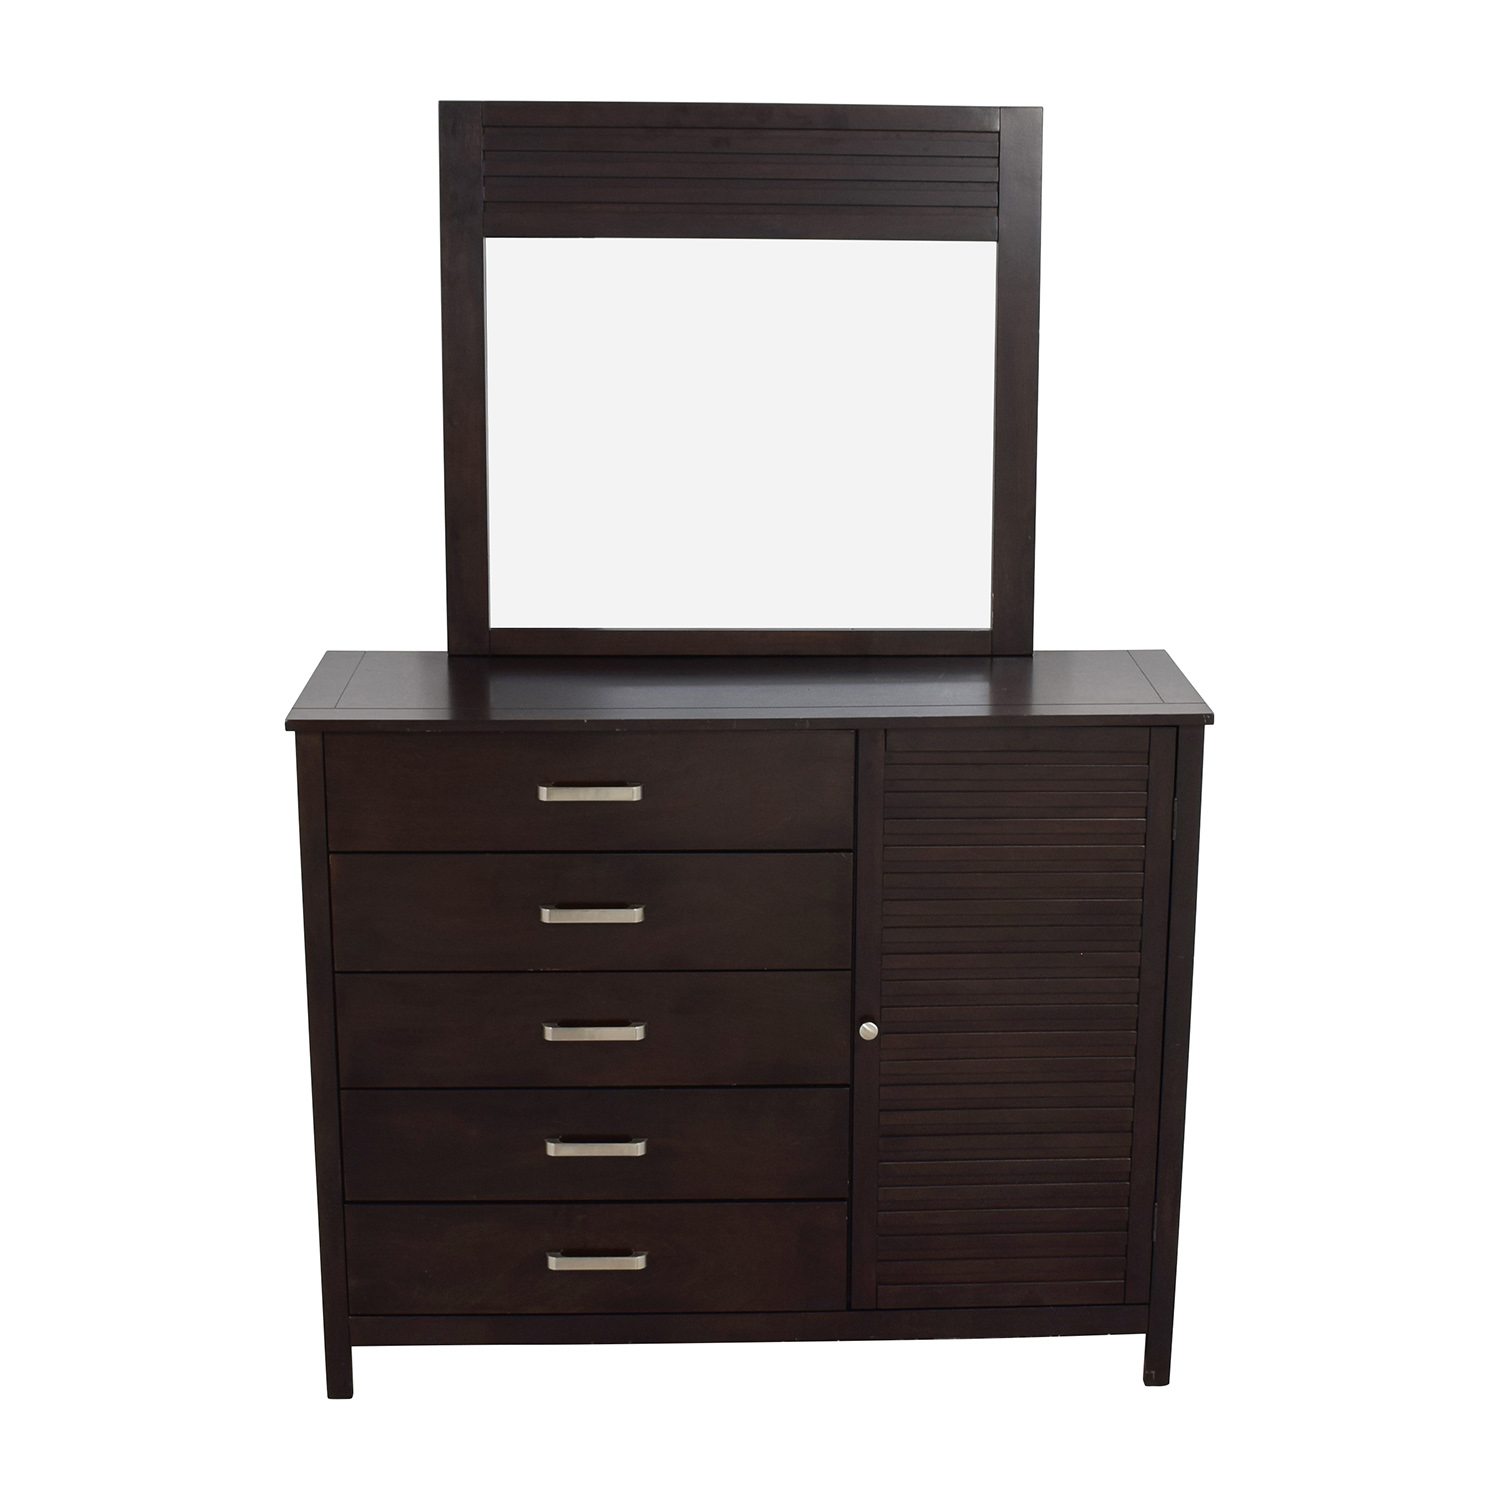 Rooms To Go Rooms to Go Espresso Grove Five-Drawer Dresser with Mirror discount